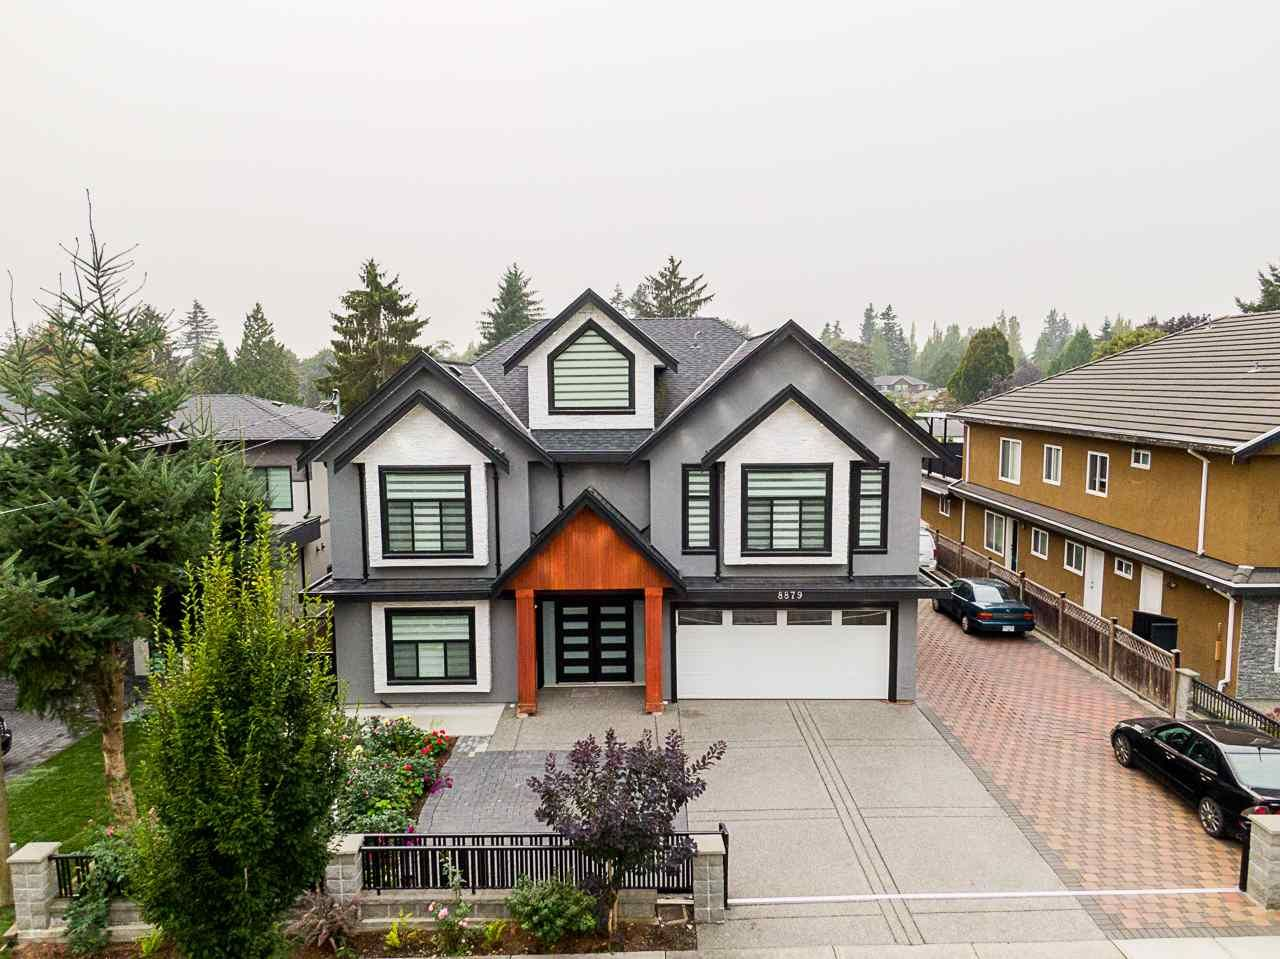 Main Photo: 8879 148 Street in Surrey: Bear Creek Green Timbers House for sale : MLS®# R2499971